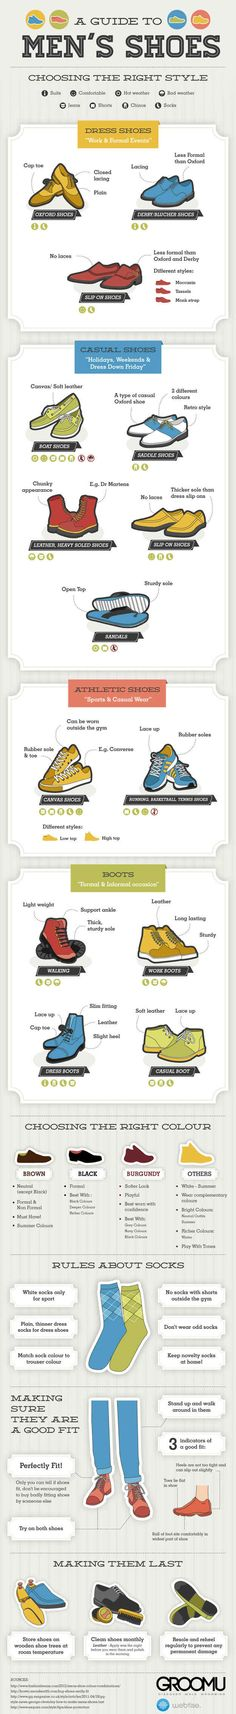 First things first, this overview of styles: